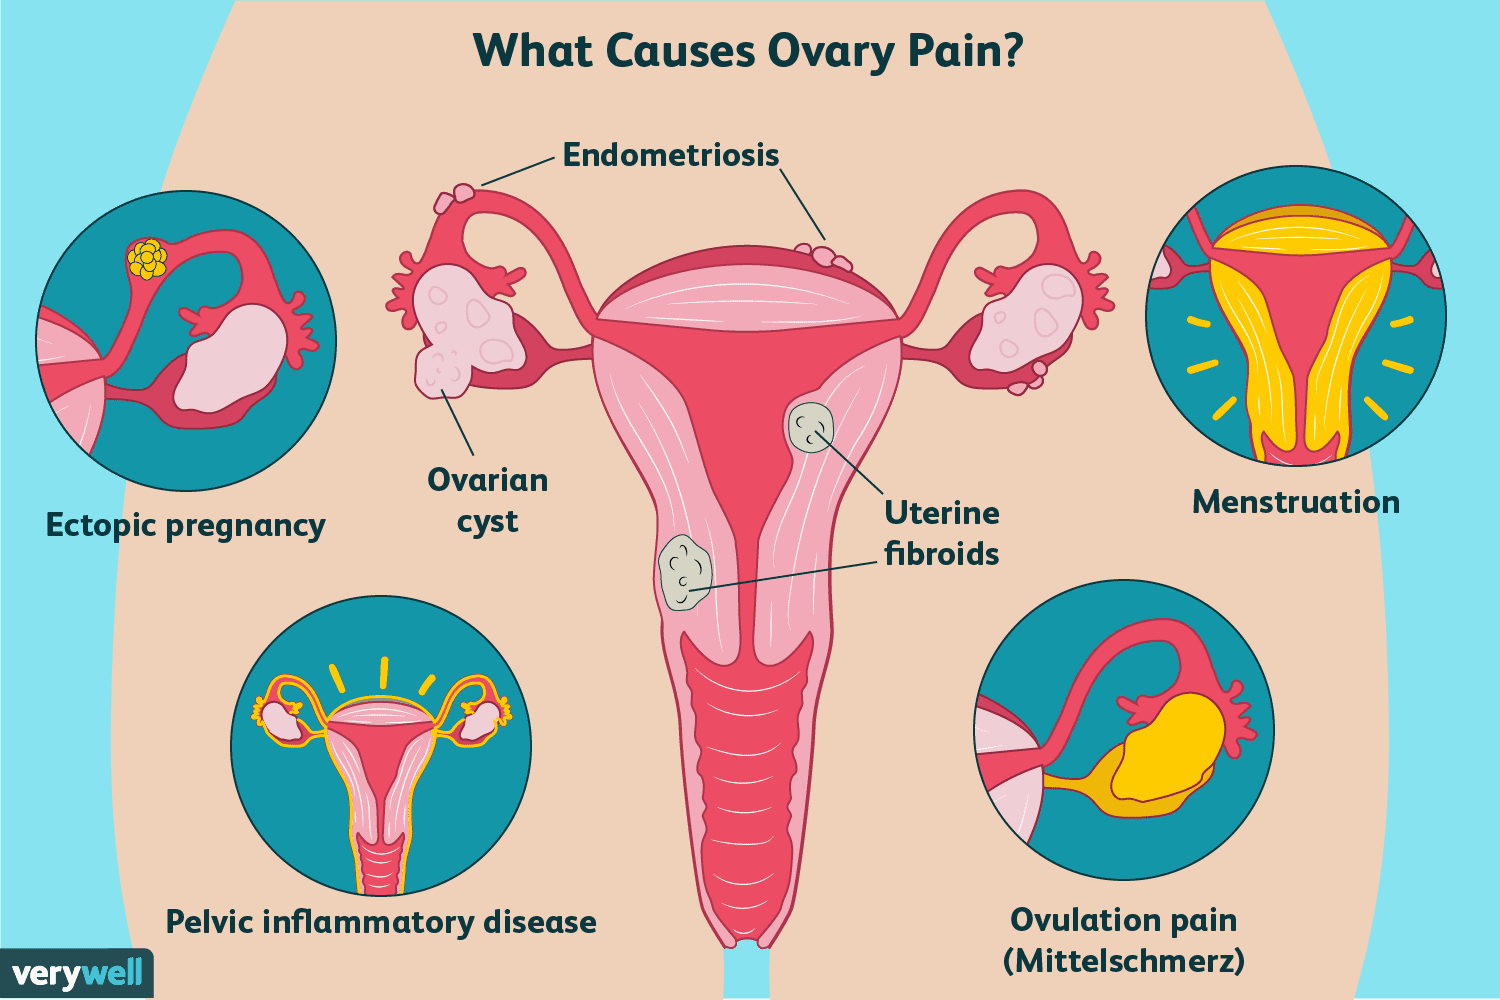 Ovary Pain: Causes, Treatment, and When to See a Doctor